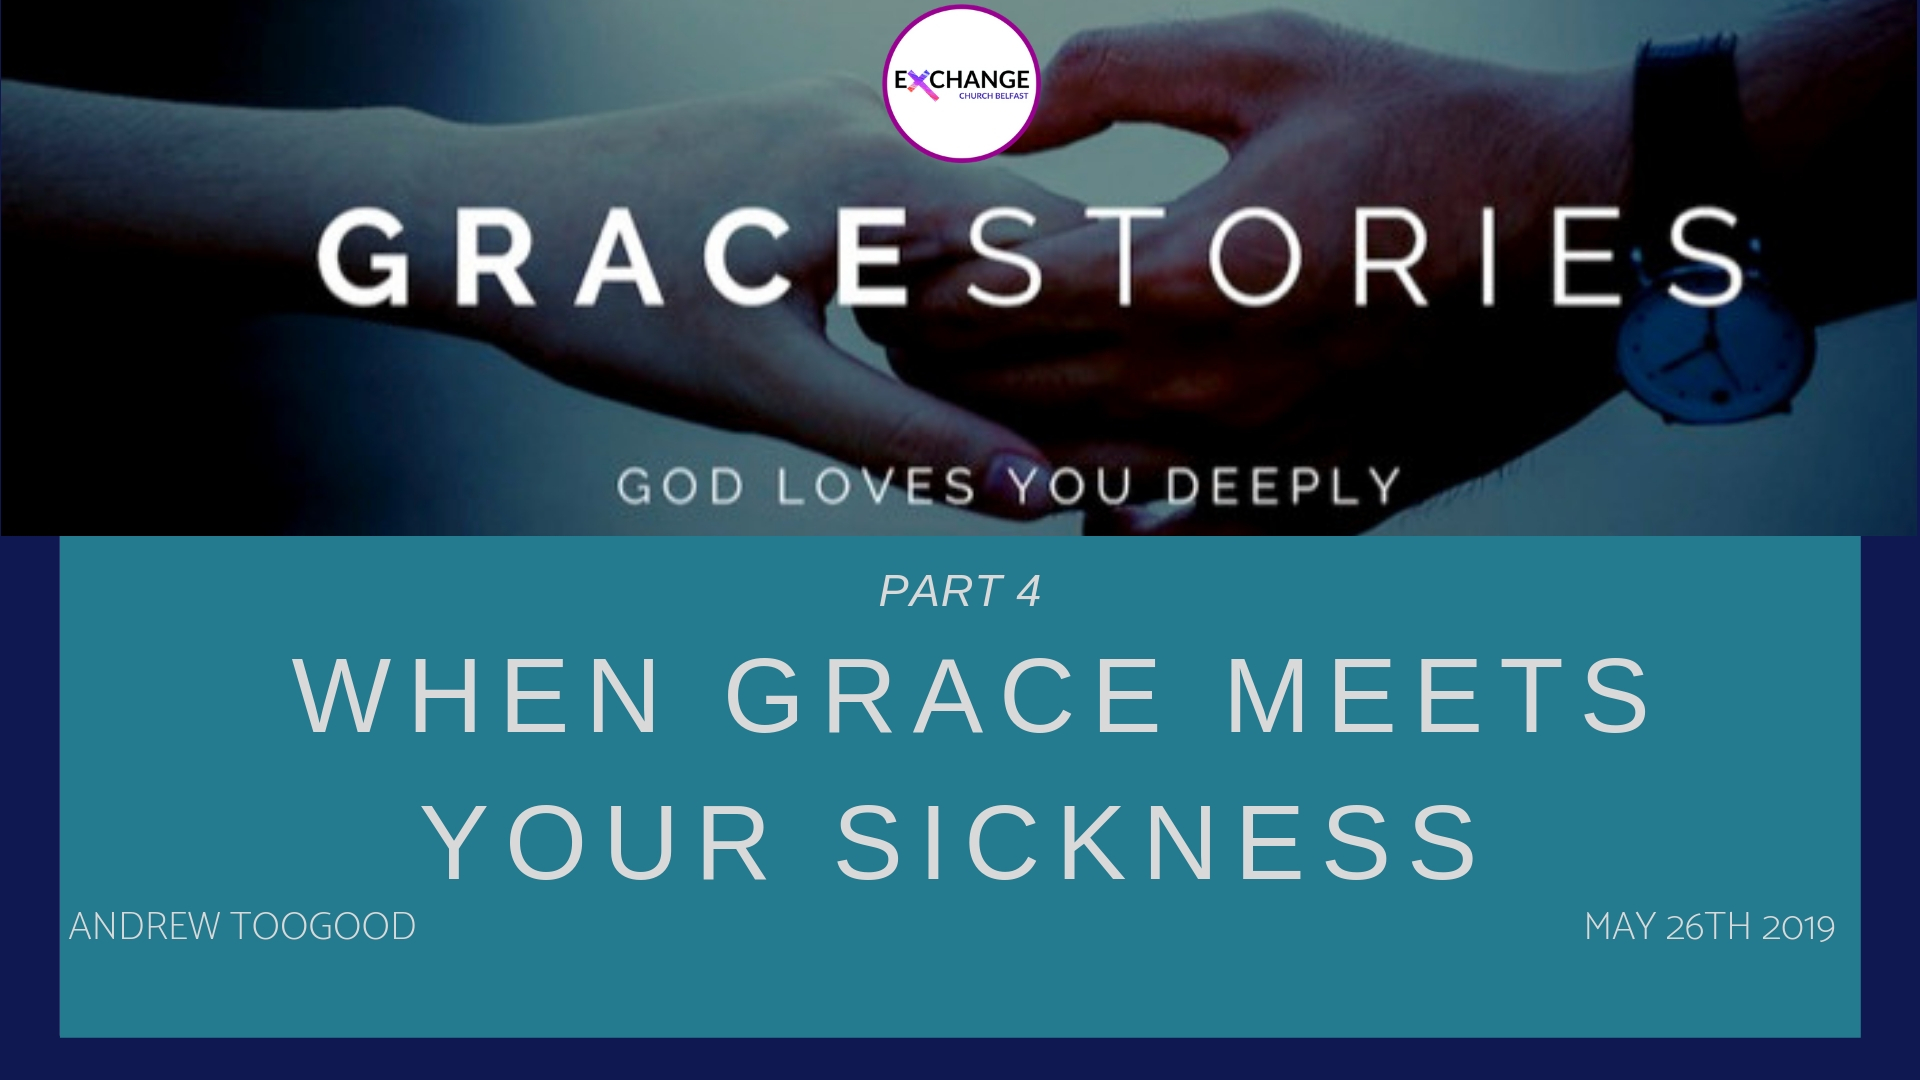 Grace stories - Part 4 - What happens when Grace meets your sickness?